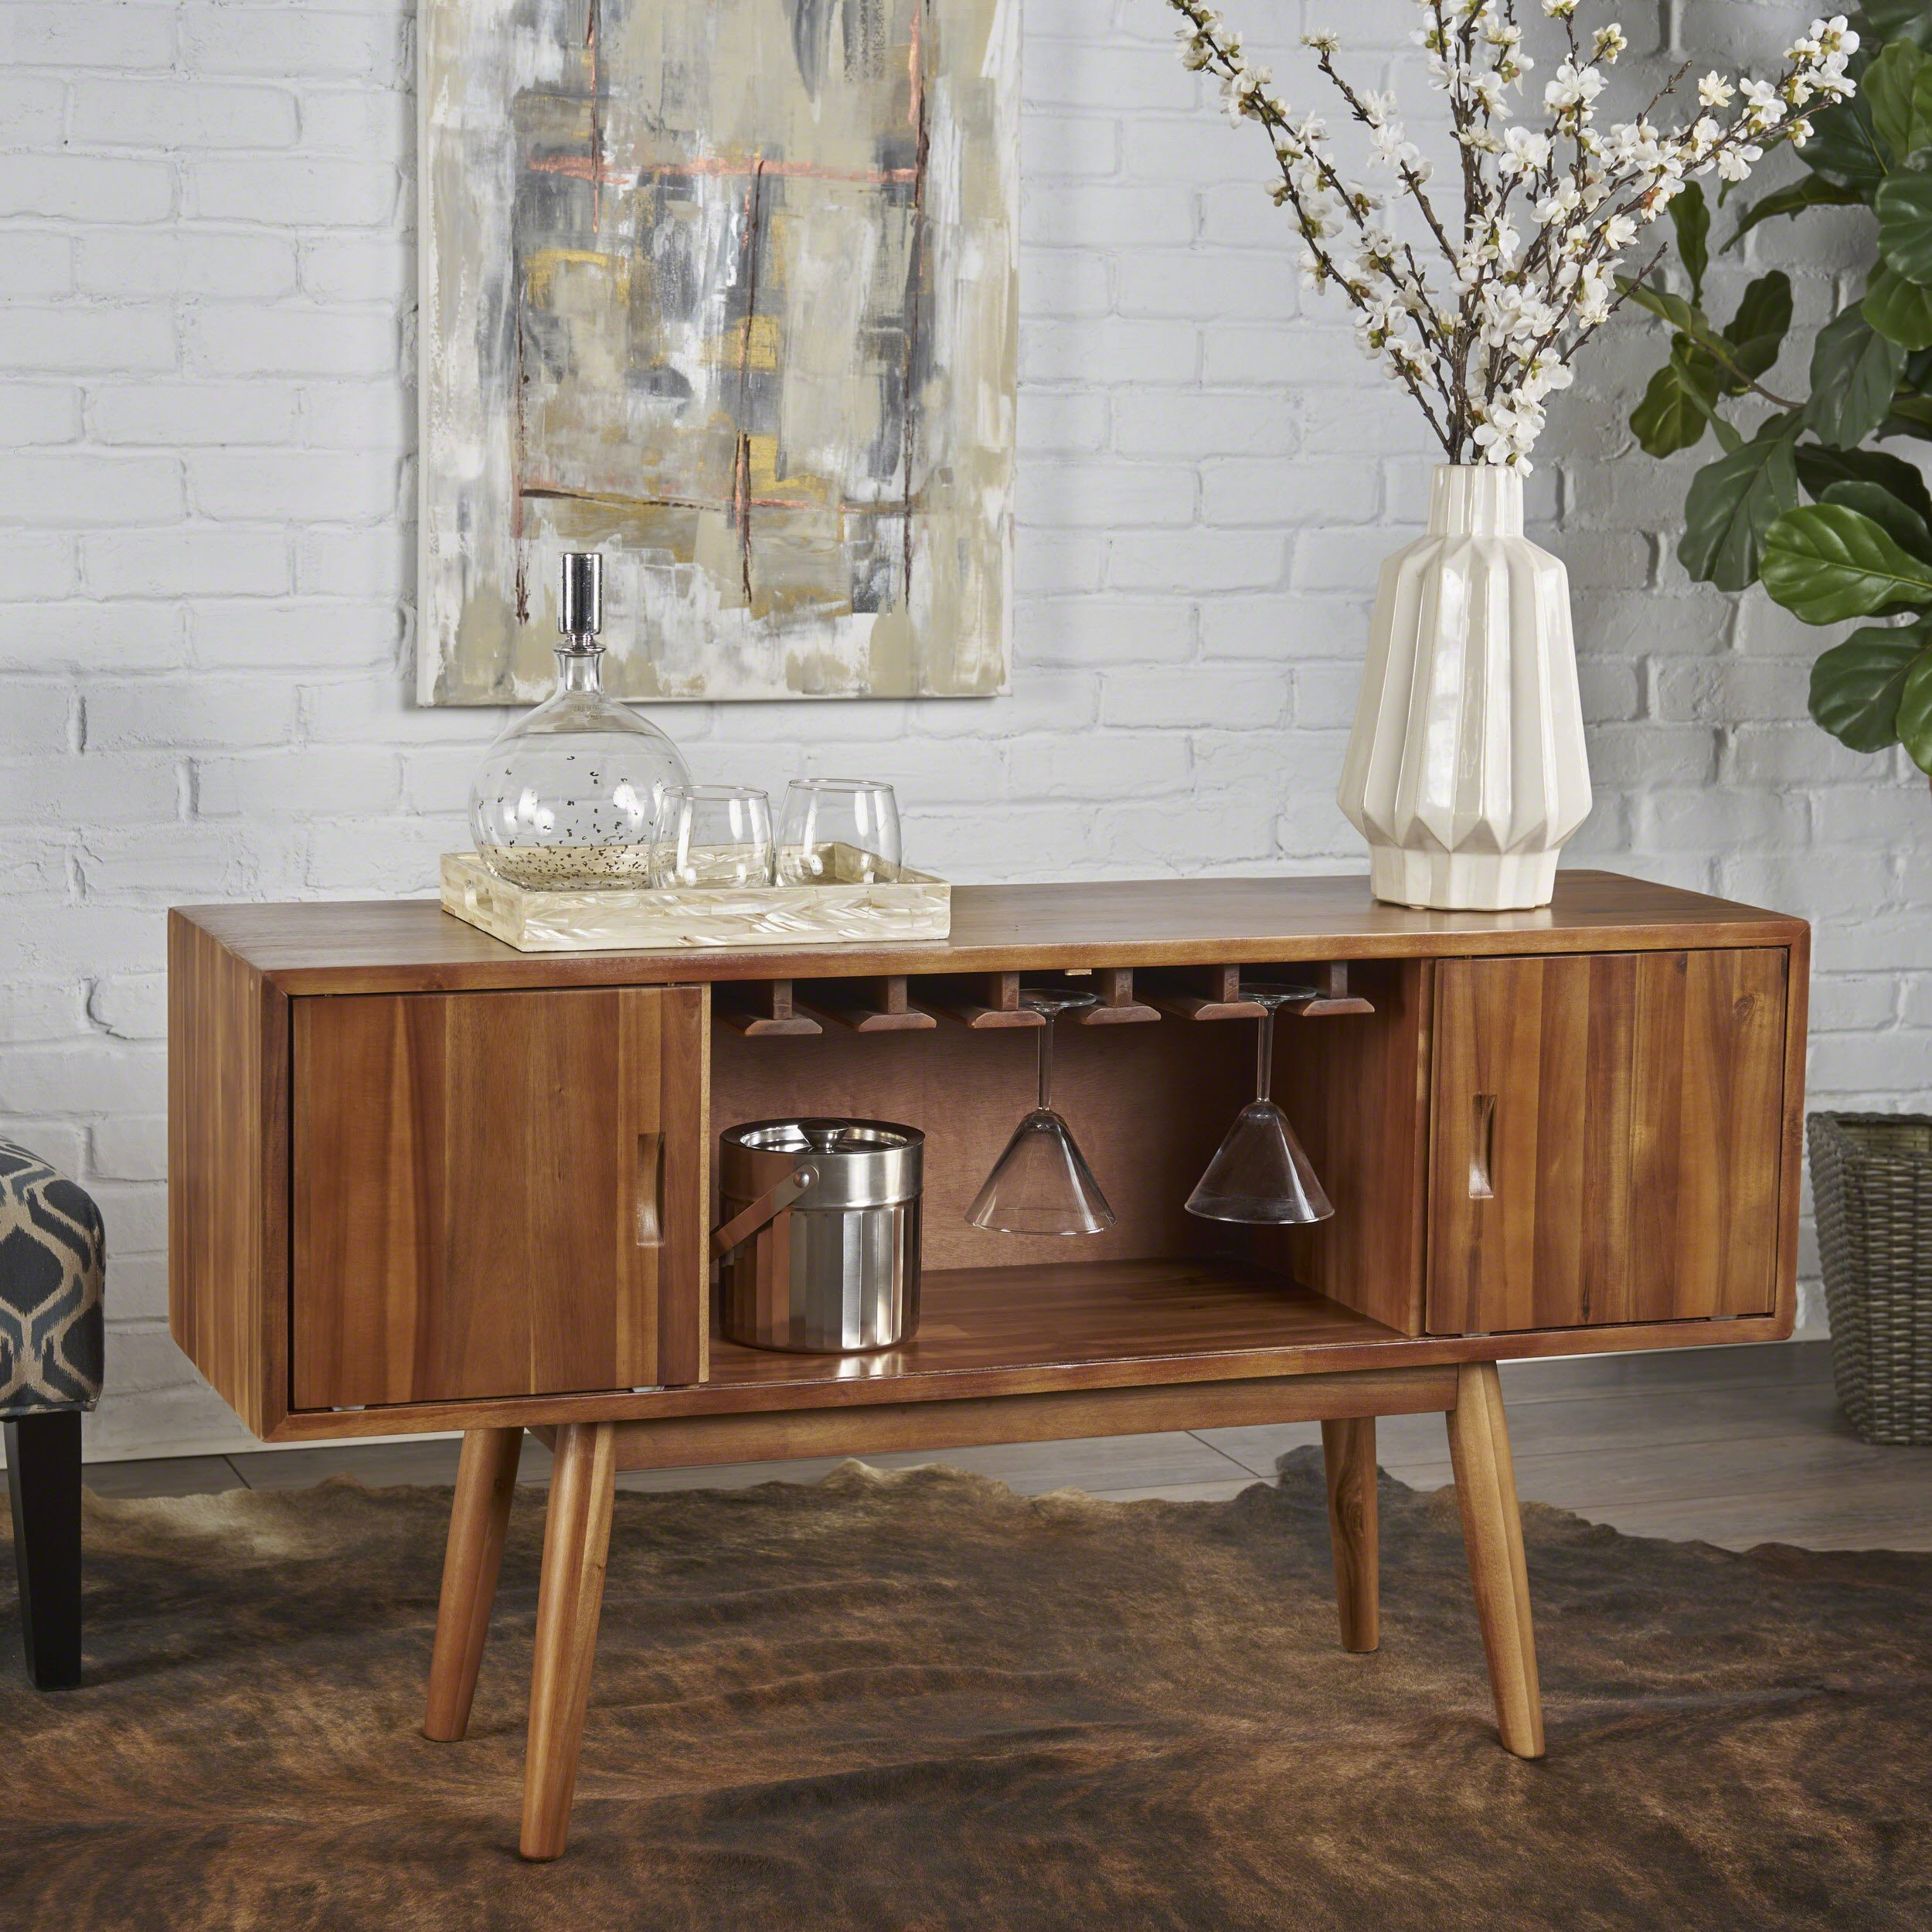 Mid Century Modern Light Oak Wood Wine Cabinet by Christopher Knight Home